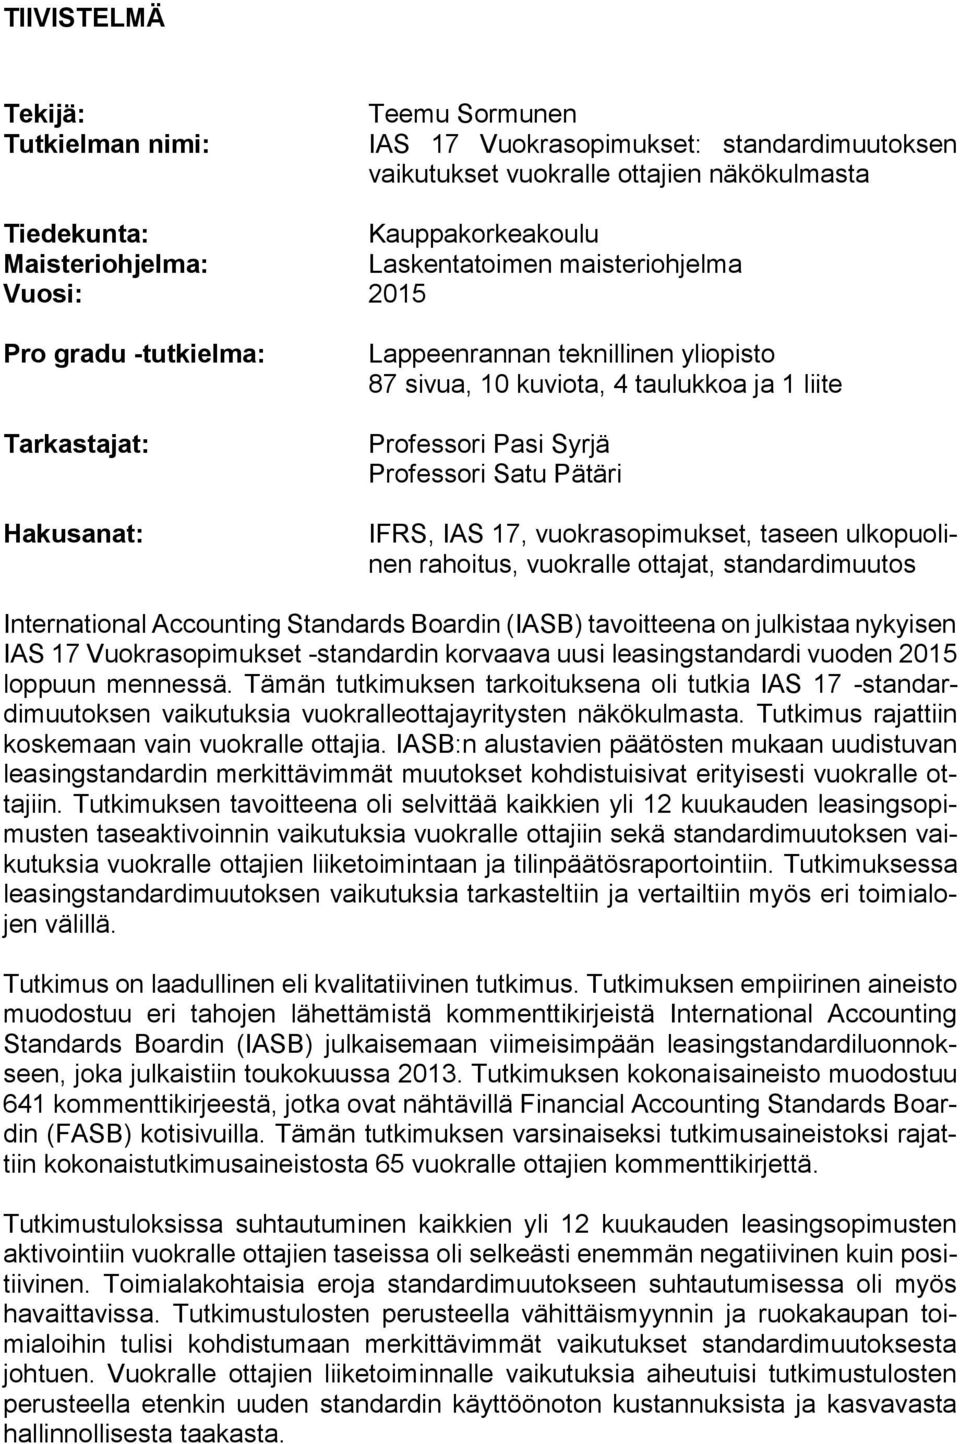 Professori Satu Pätäri IFRS, IAS 17, vuokrasopimukset, taseen ulkopuolinen rahoitus, vuokralle ottajat, standardimuutos International Accounting Standards Boardin (IASB) tavoitteena on julkistaa